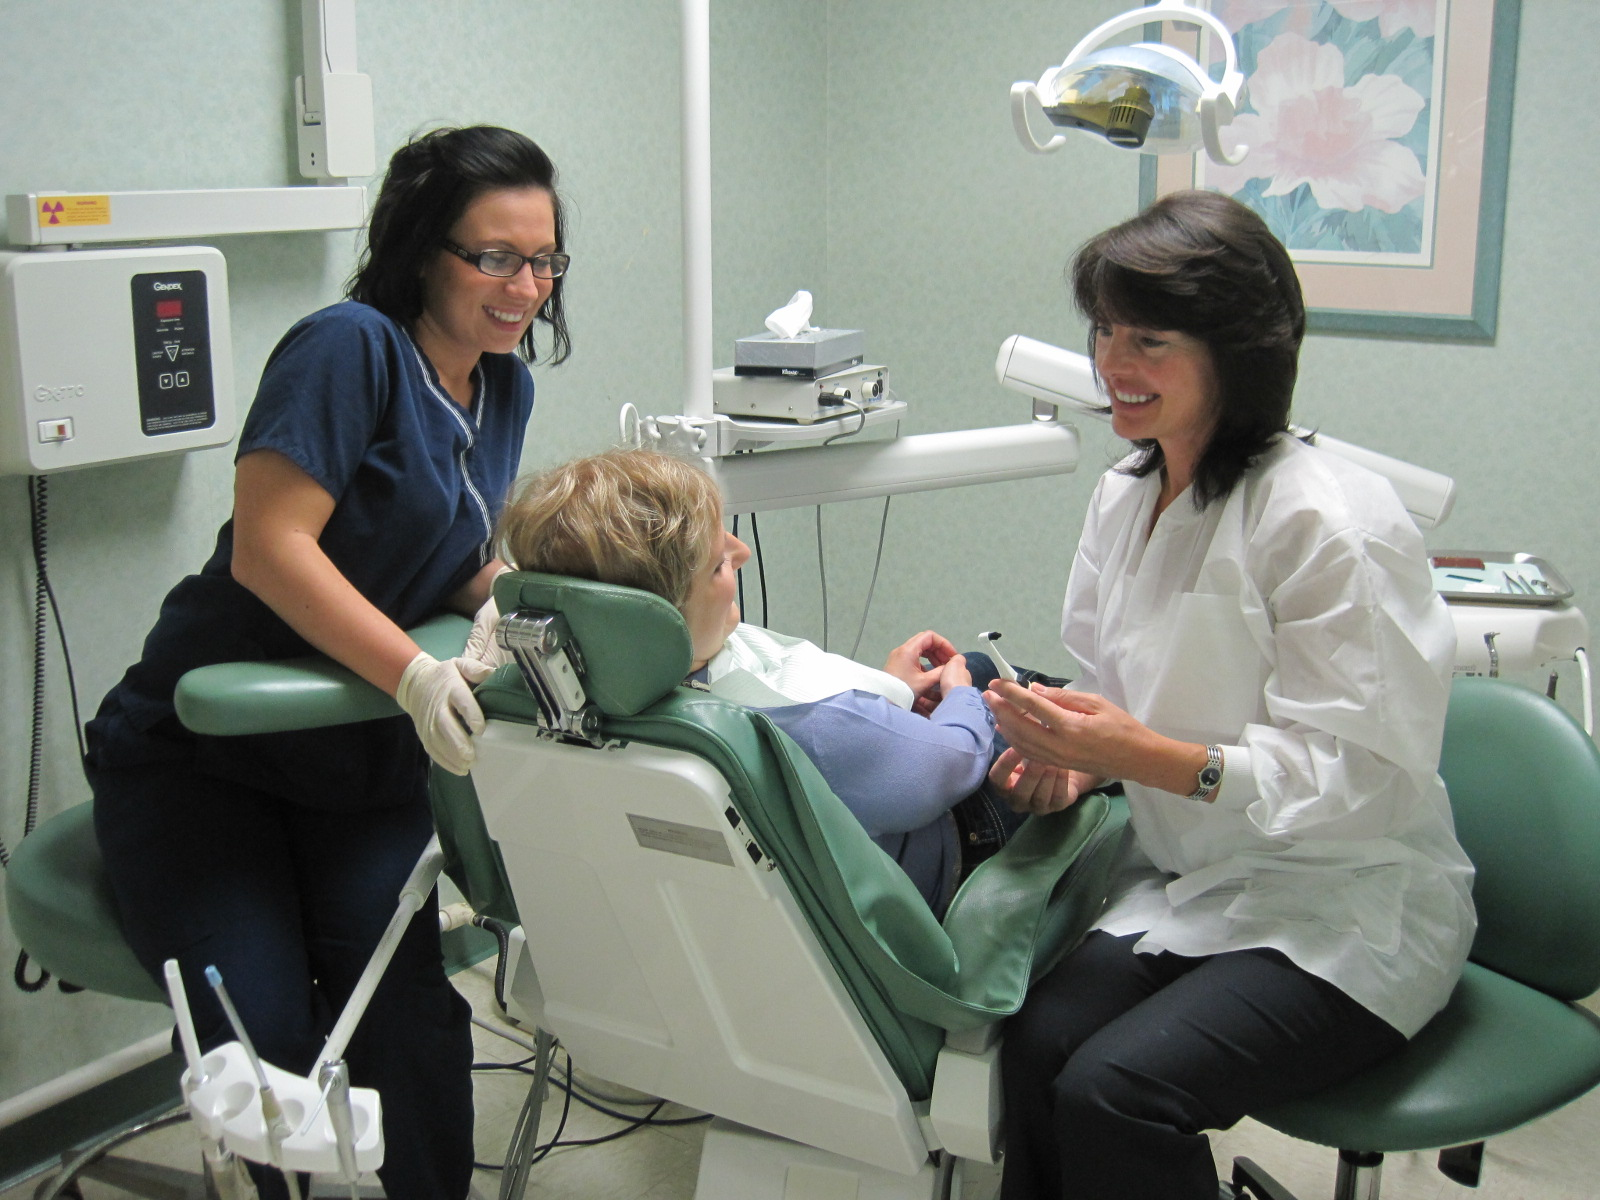 Cosmetic Dentist in Parlin NJ, Dr. Mariana Blagoev, Interviewed on Correcting Problematic Teeth